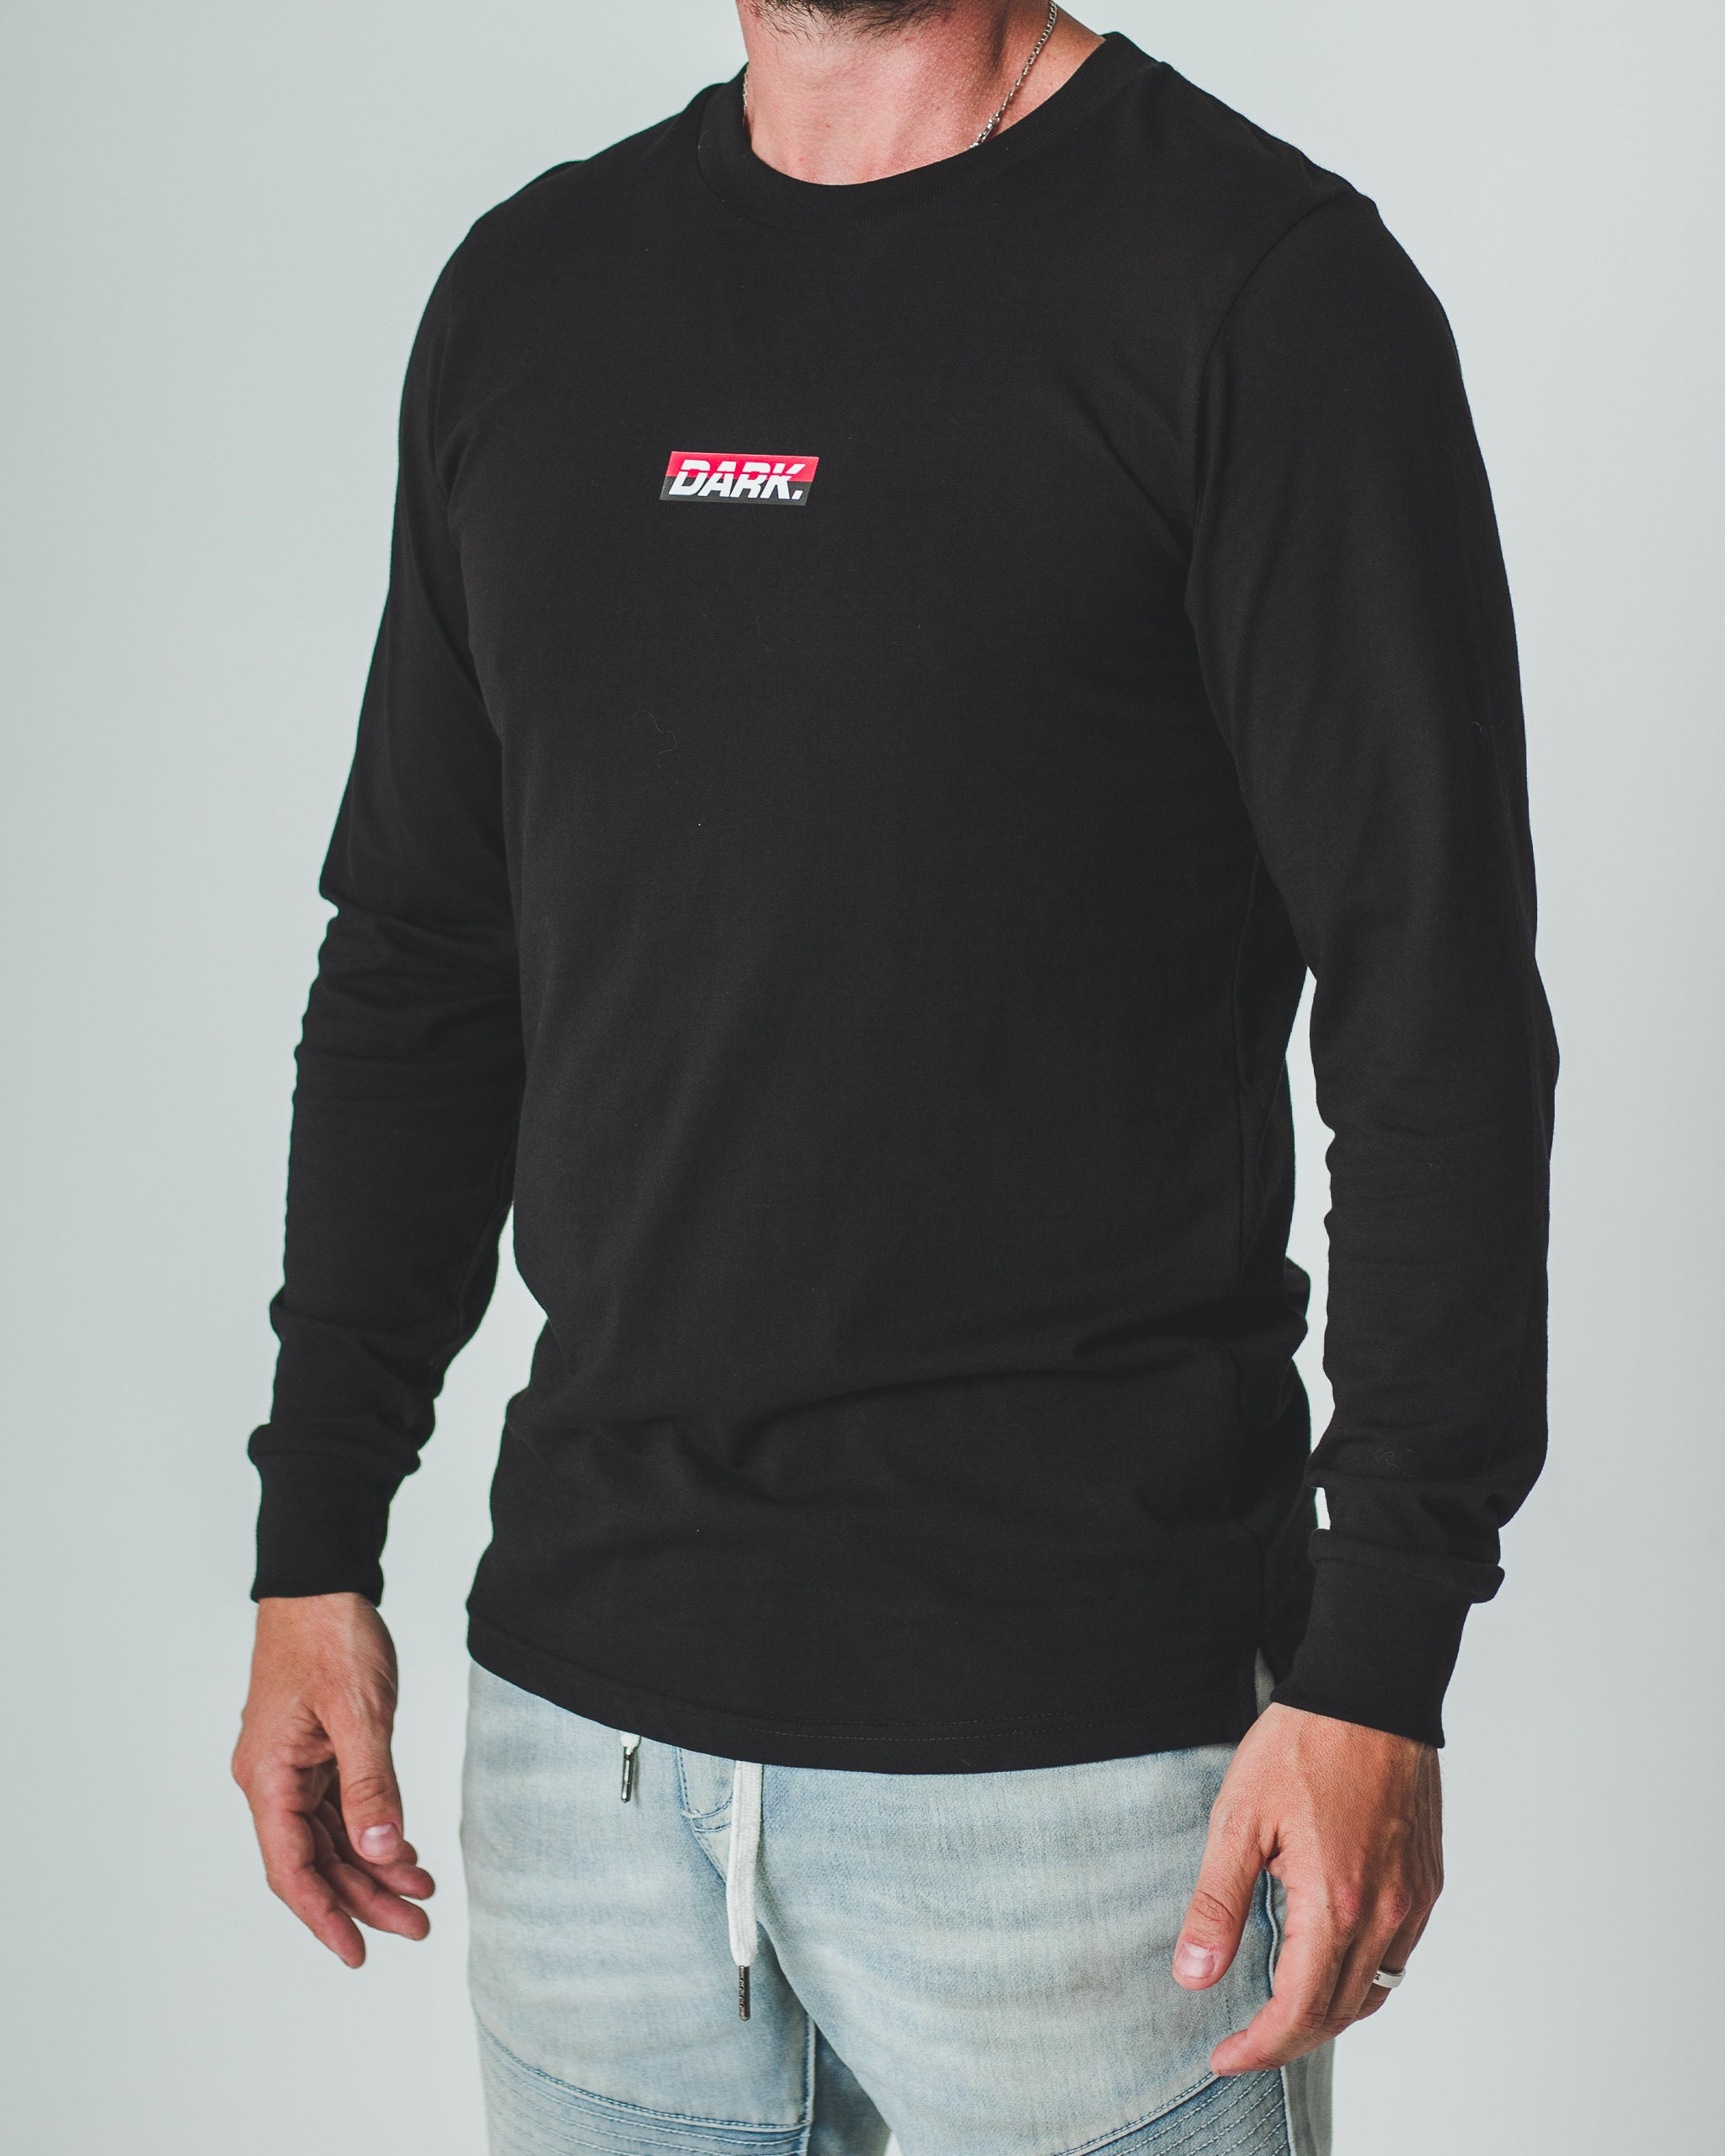 DARK SPLIT LONG SLEEVE TEE - Dark Apparel